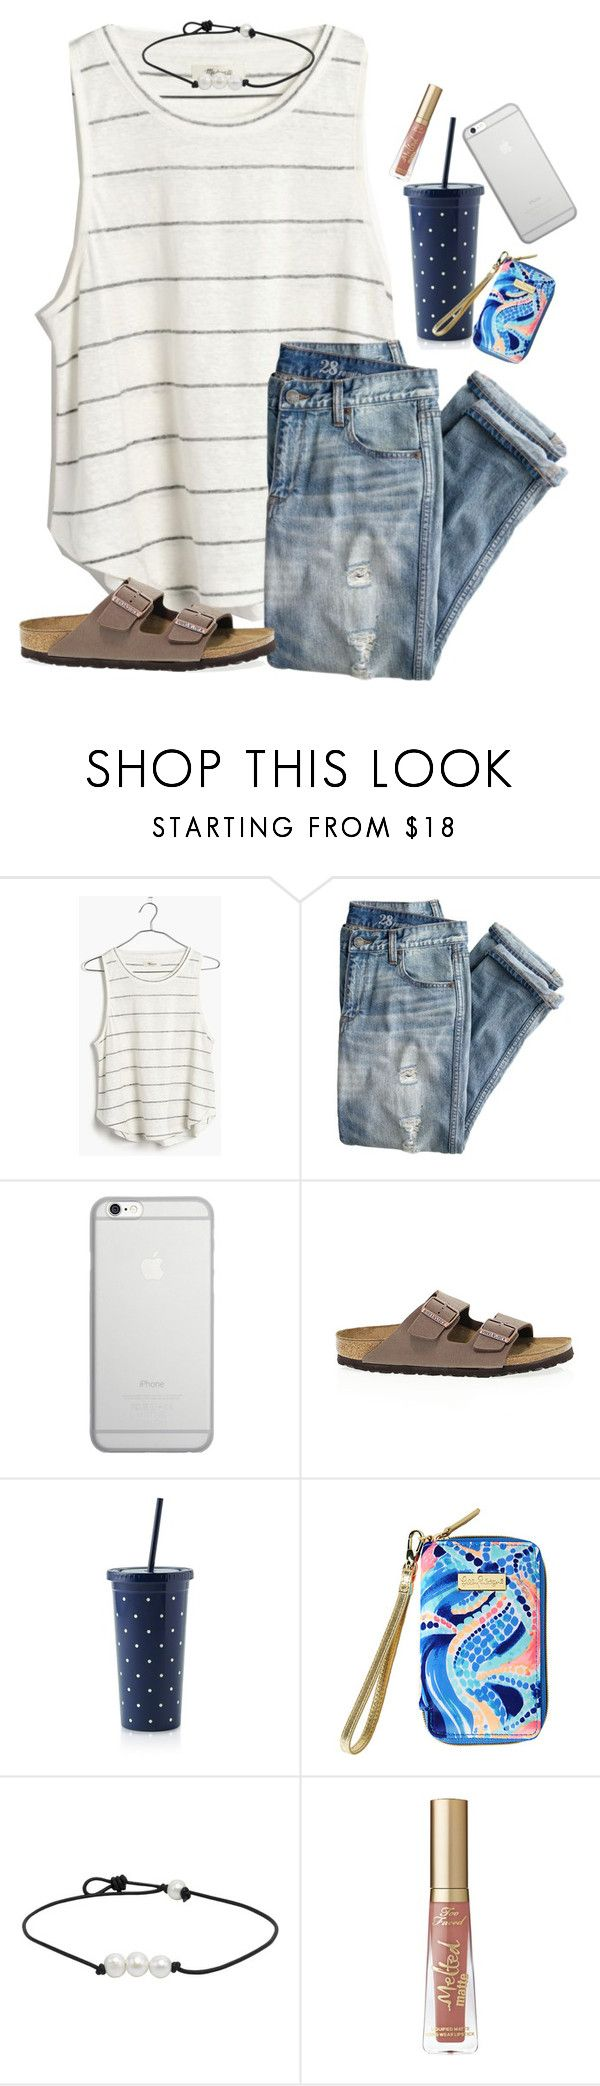 """Still don't know what team I'm on"" by ab1525 ❤ liked on Polyvore featuring Madewell, J.Crew, Native Union, Birkenstock, Kate Spade, Lilly Pulitzer and Too Faced Cosmetics"